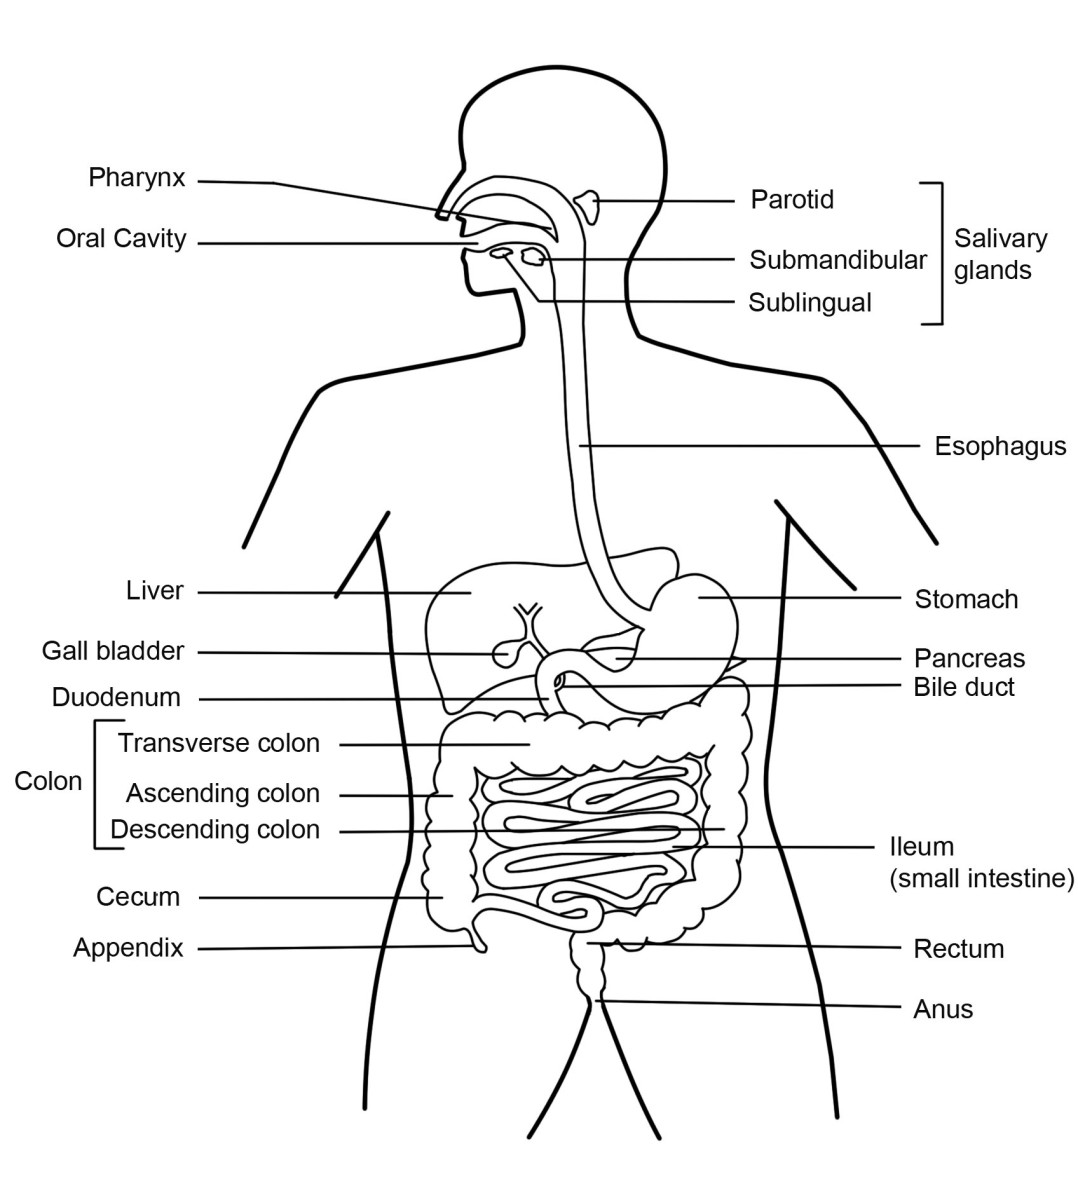 Simple human digestive system diagram - photo#1